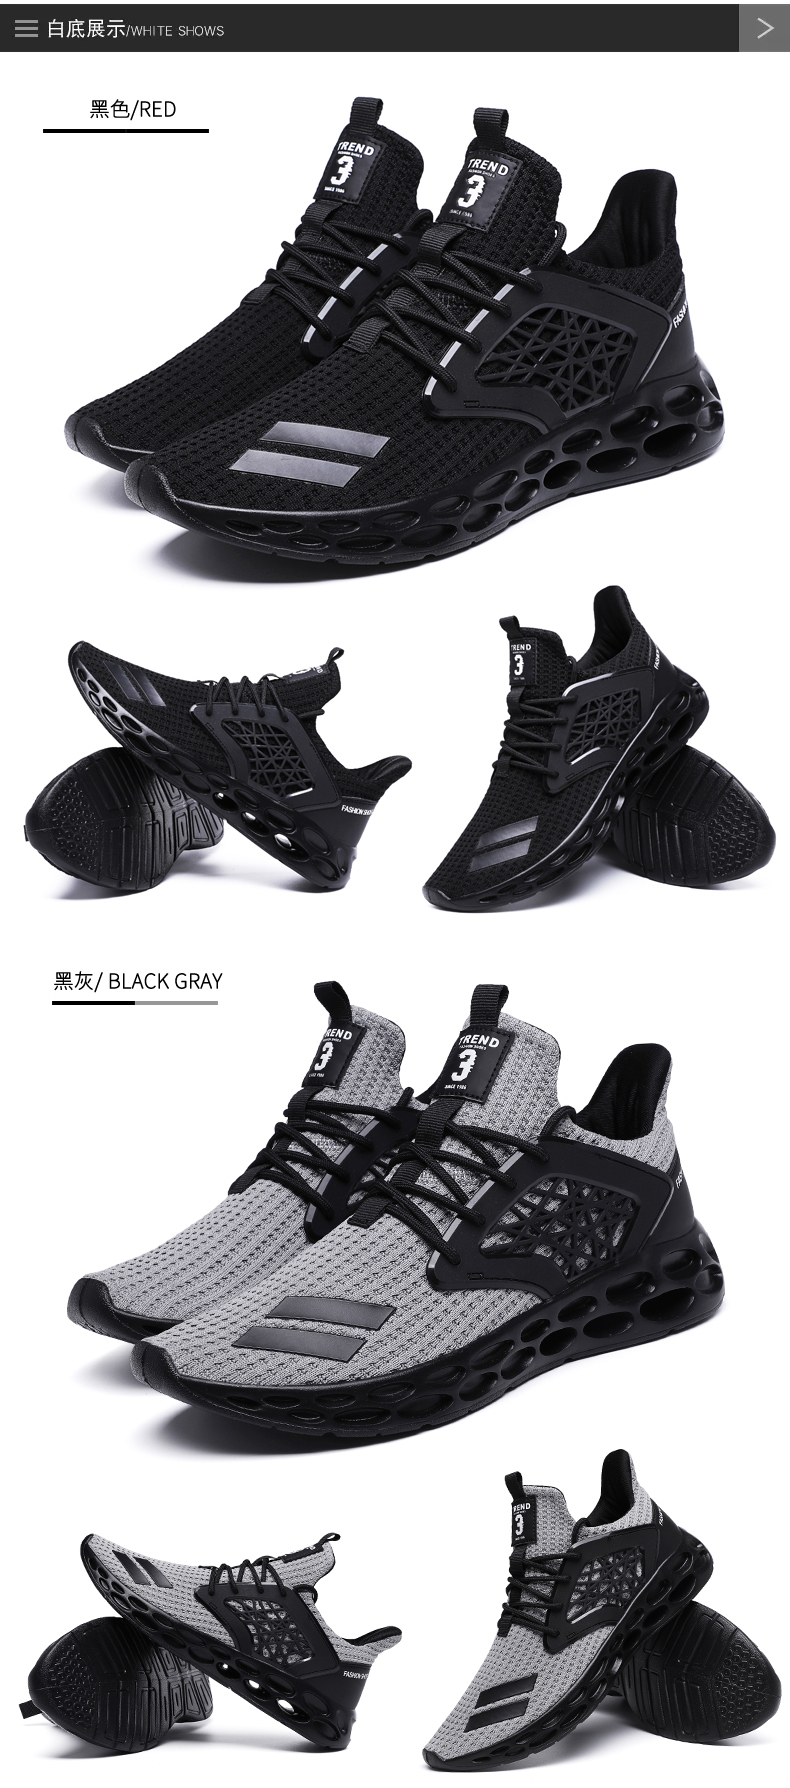 HTB1xoUYKb5YBuNjSspoq6zeNFXaj - Shoes Men Sneakers Breathable Casual Shoes Krasovki Mocassin Basket Homme Comfortable Light Trainers Chaussures Pour Hommes